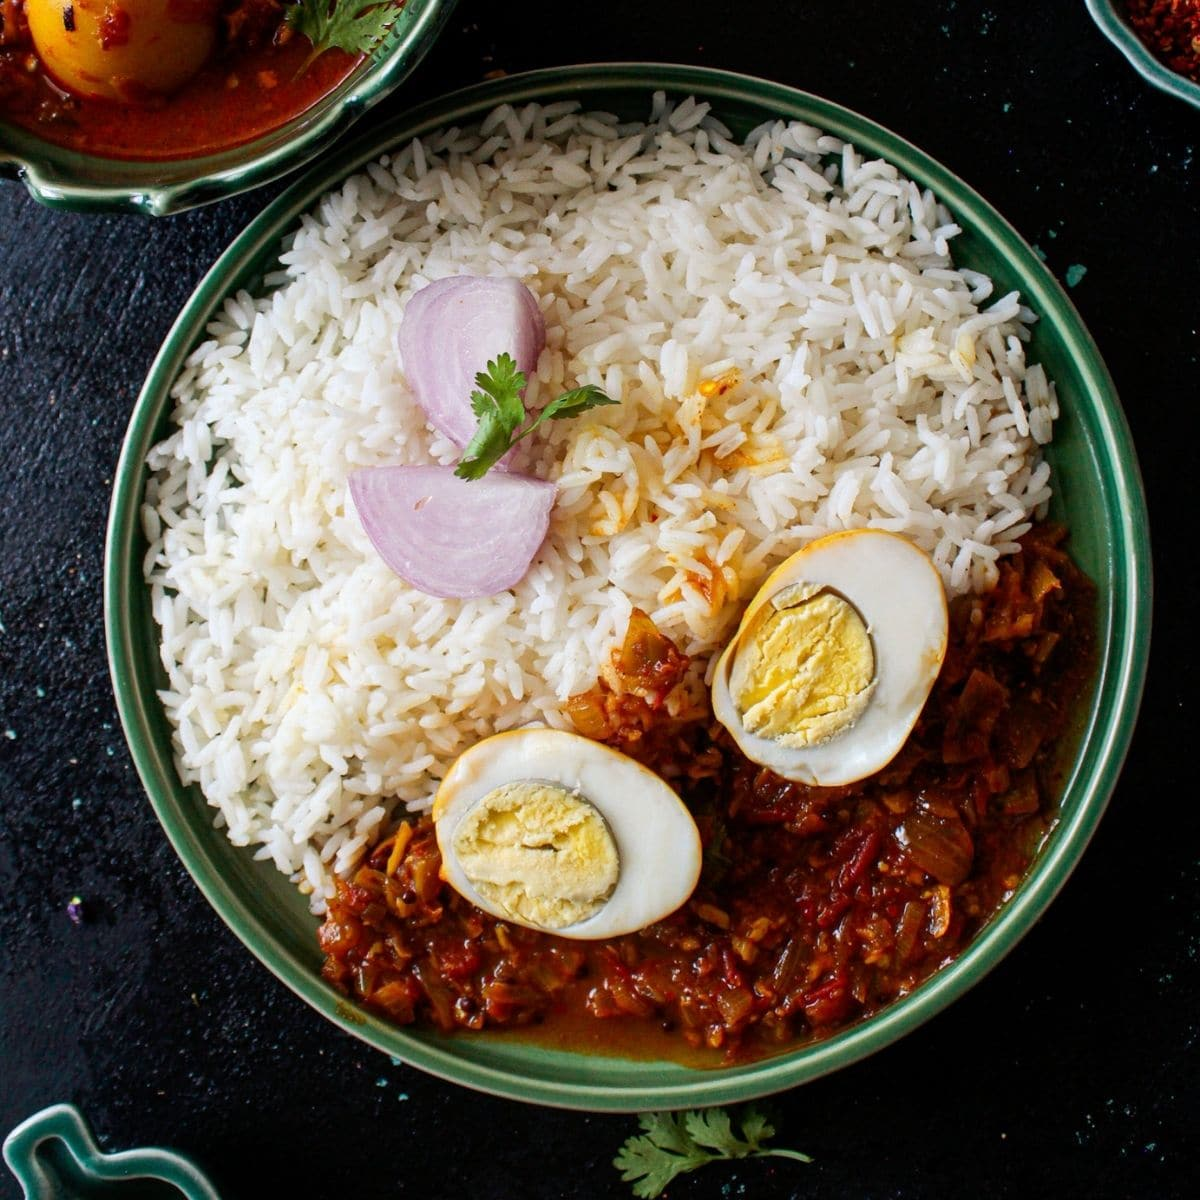 Bright green bowl filled with rice and egg curry with egg cut in half